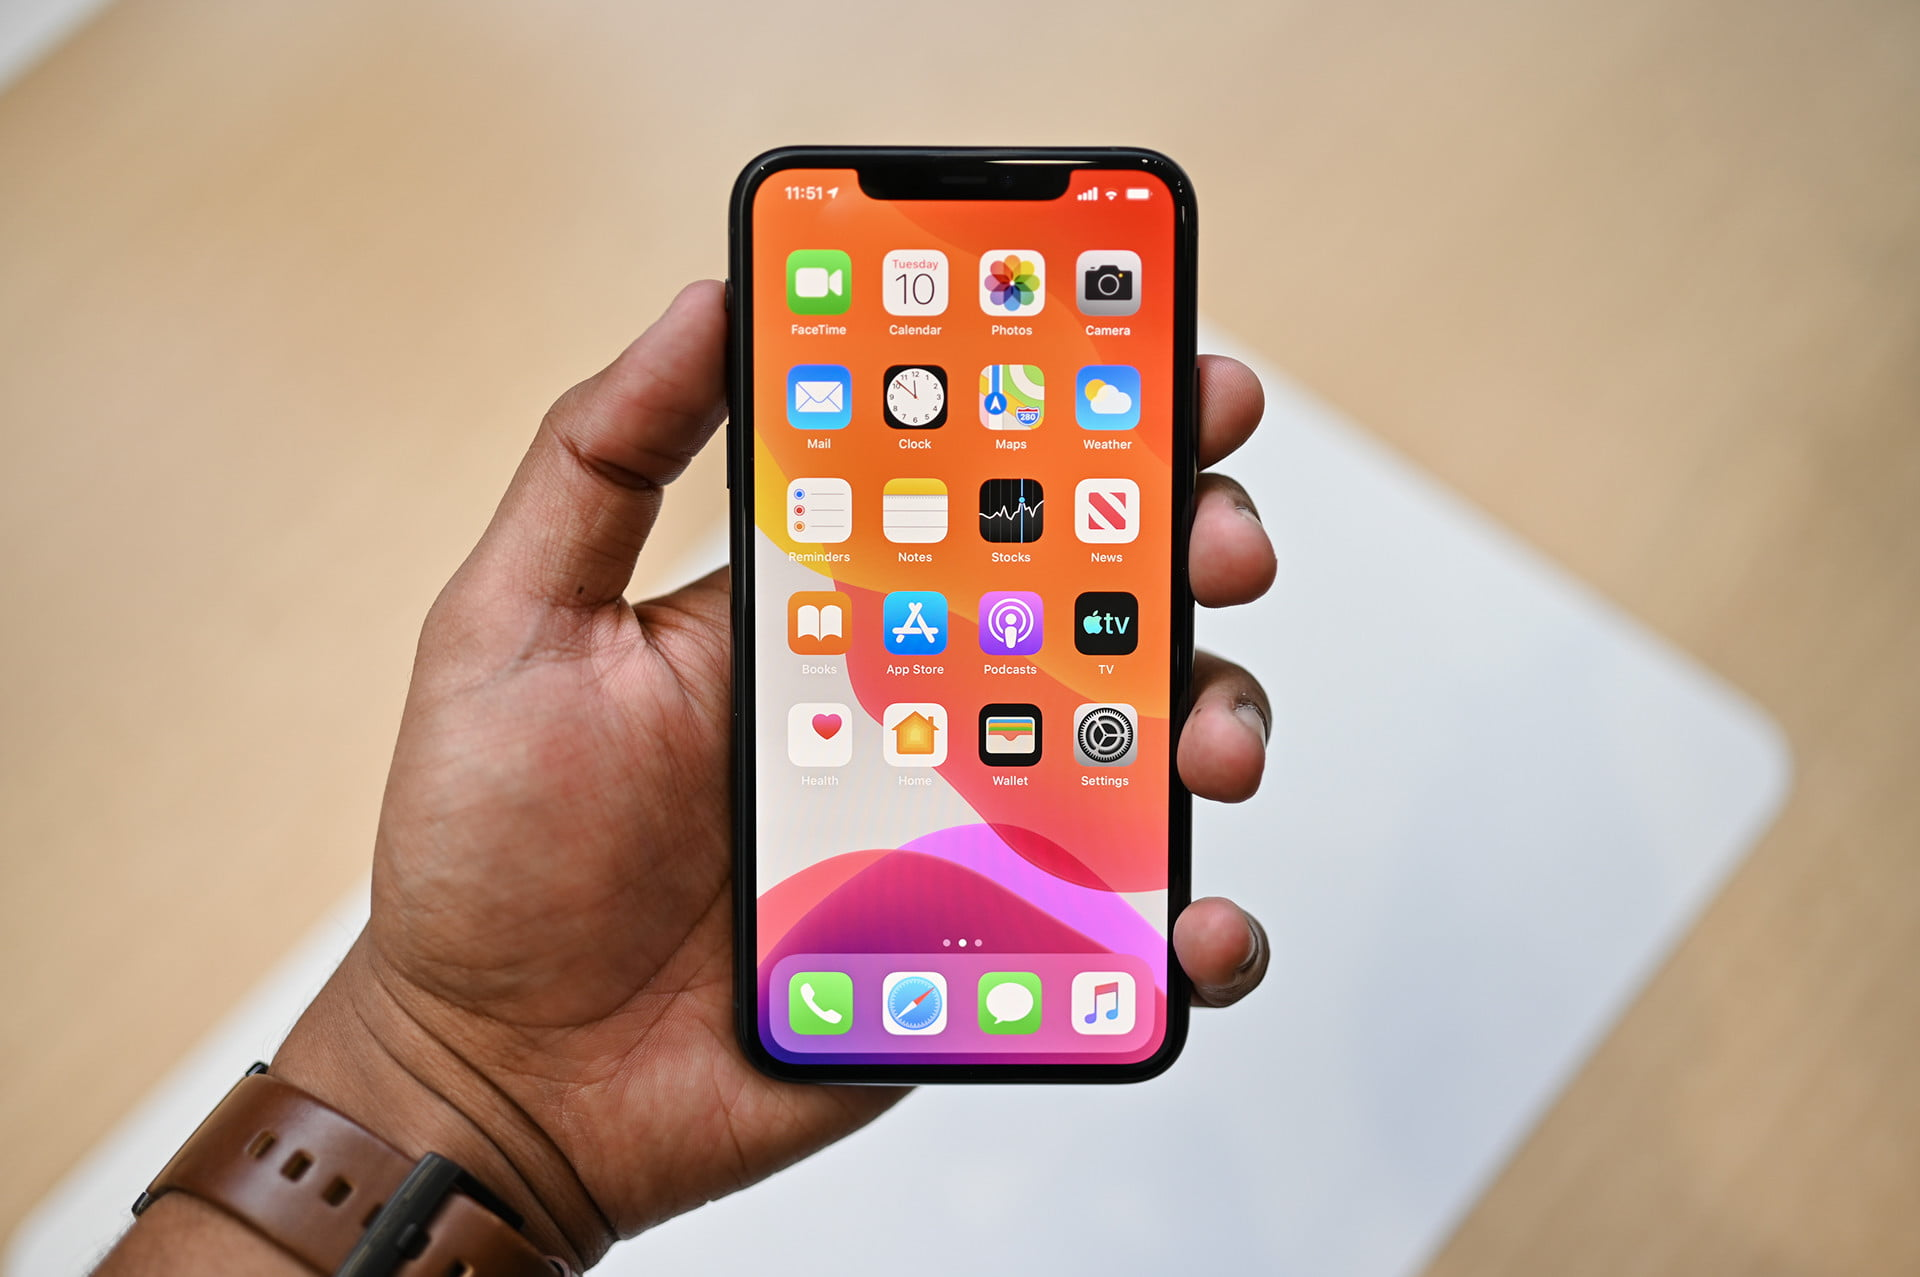 Apple iPhone 11 Pro Max vs. Samsung Galaxy Note 10 Plus: Which phone is best?